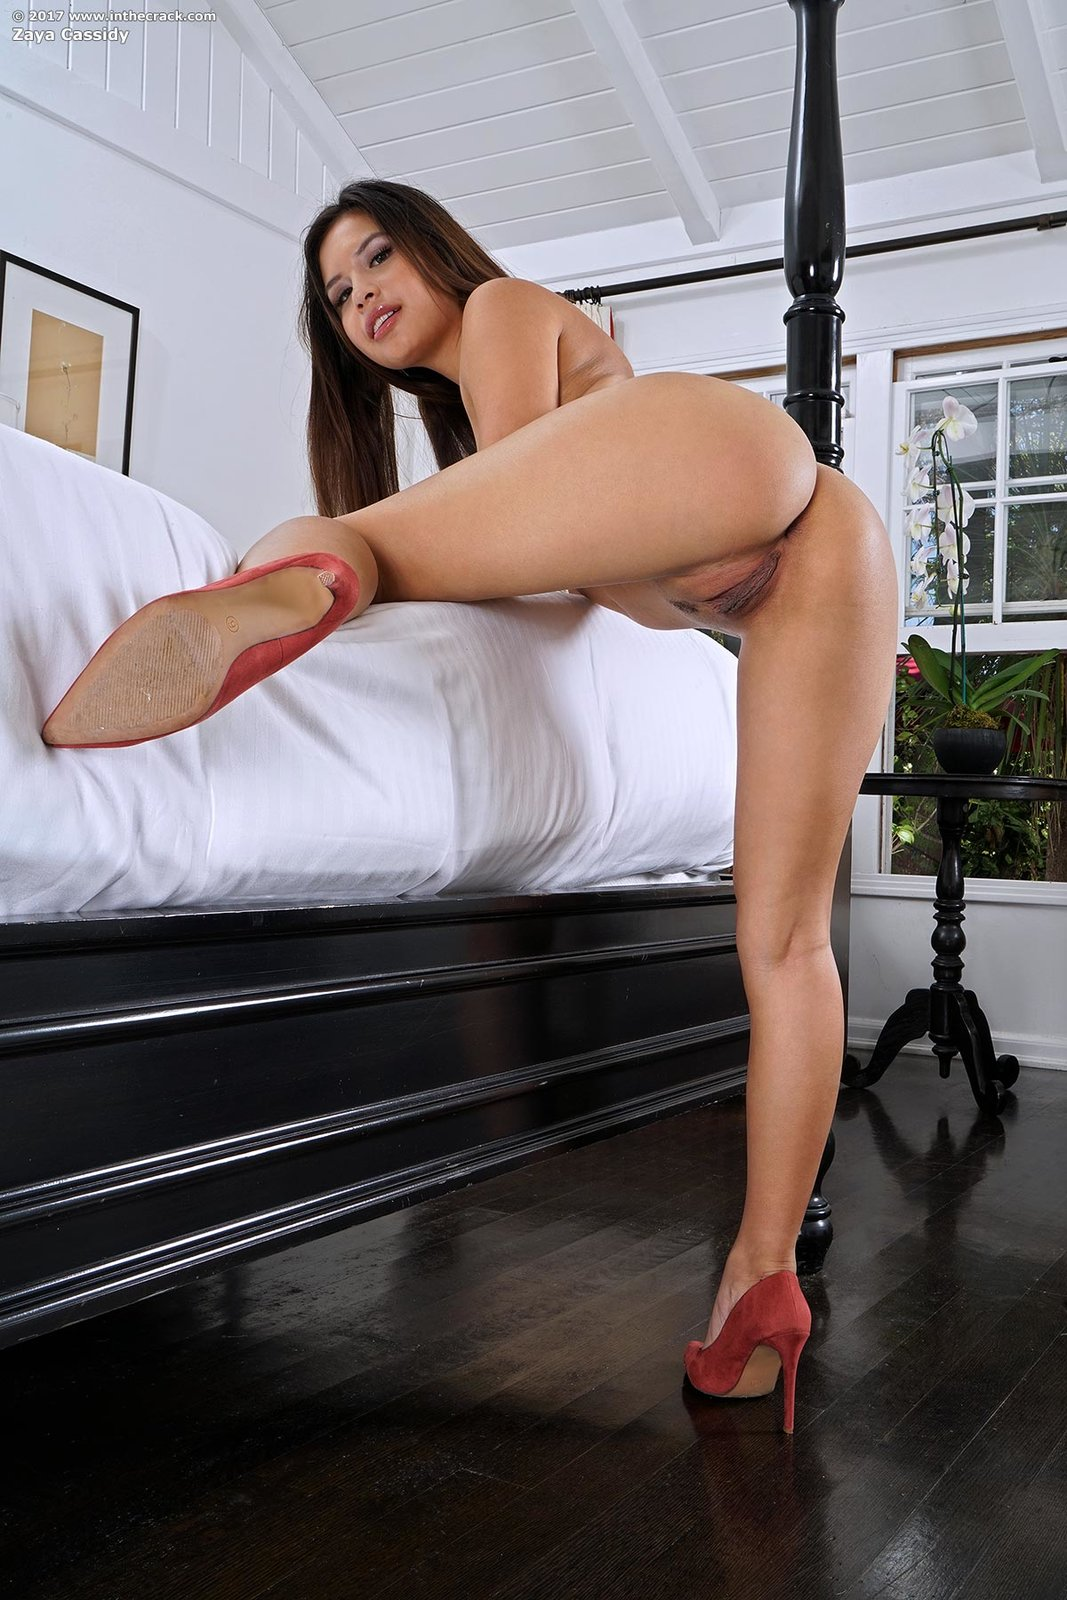 Babe Today Inthecrack Zaya Cassidy Contain Babes Xxx-pic887